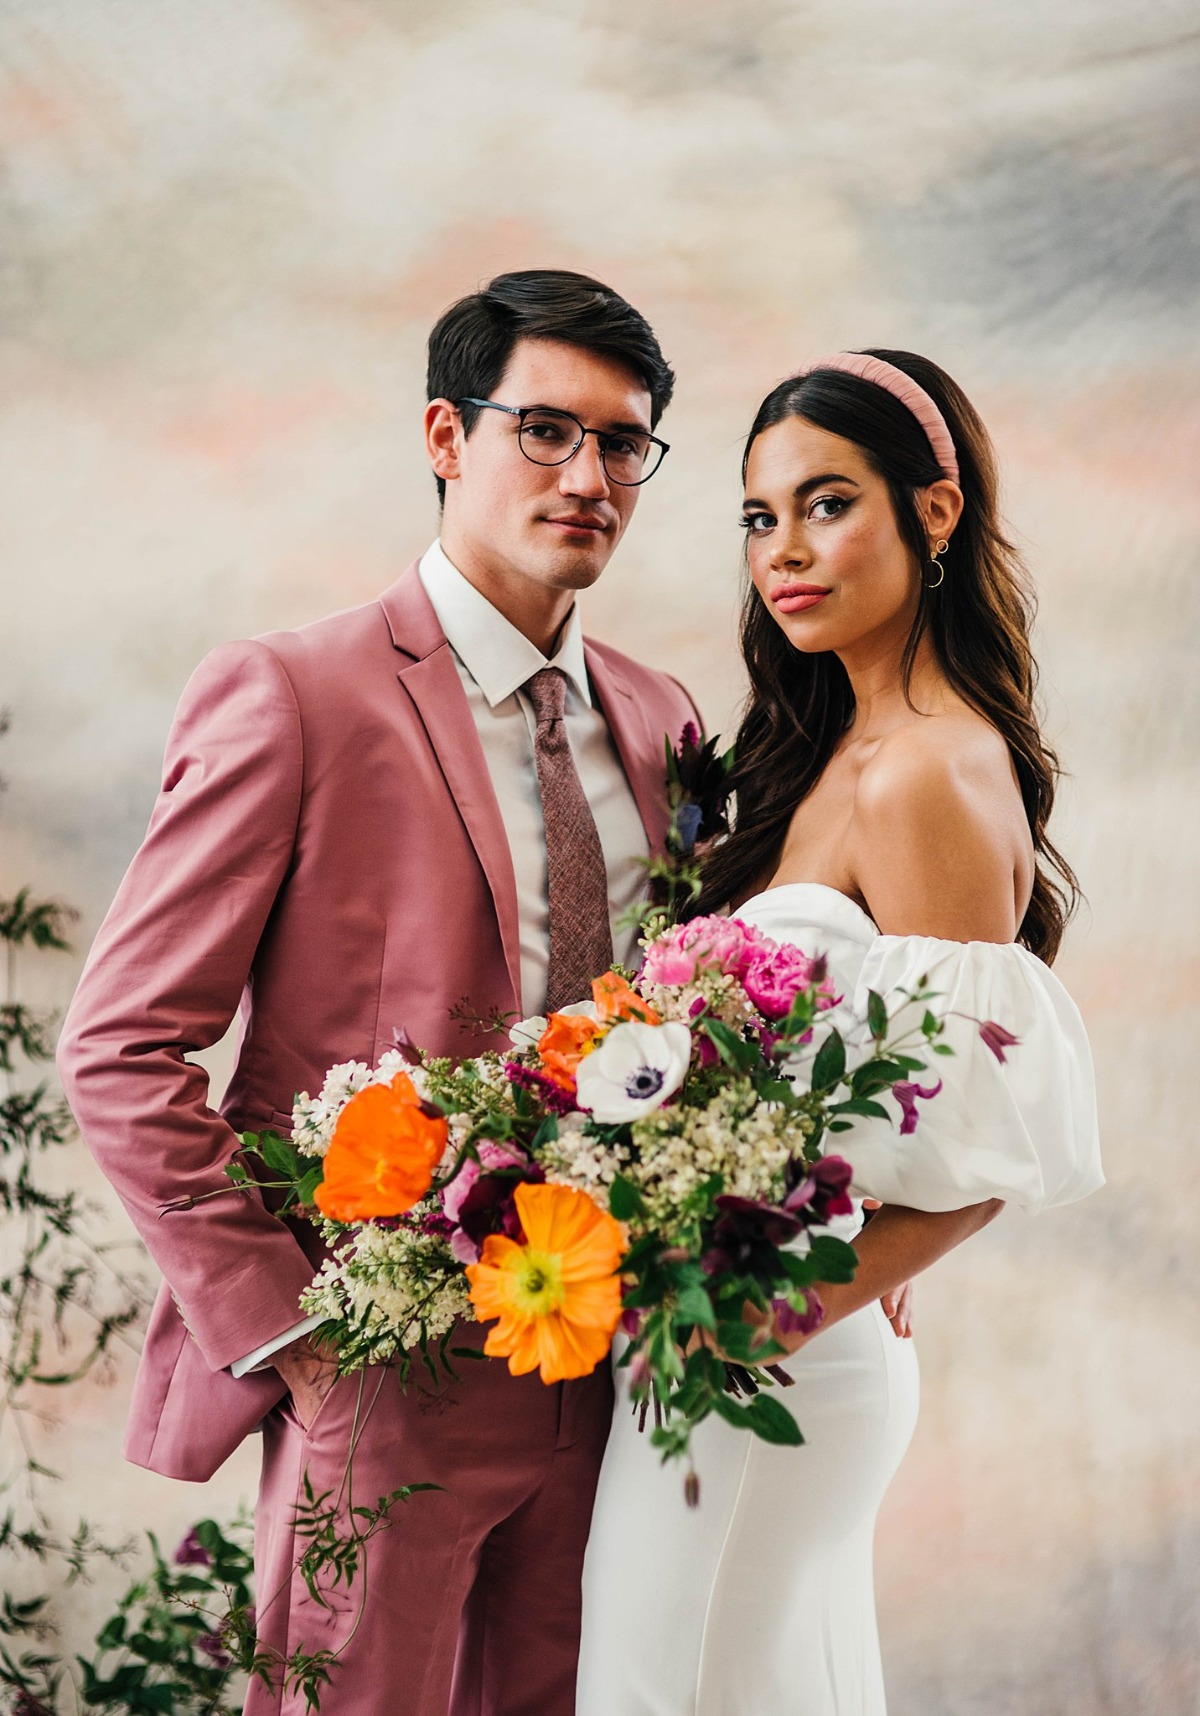 retro wedding inspiration ideas - inspired by 1986 cult- classic movie, Pretty In Pink